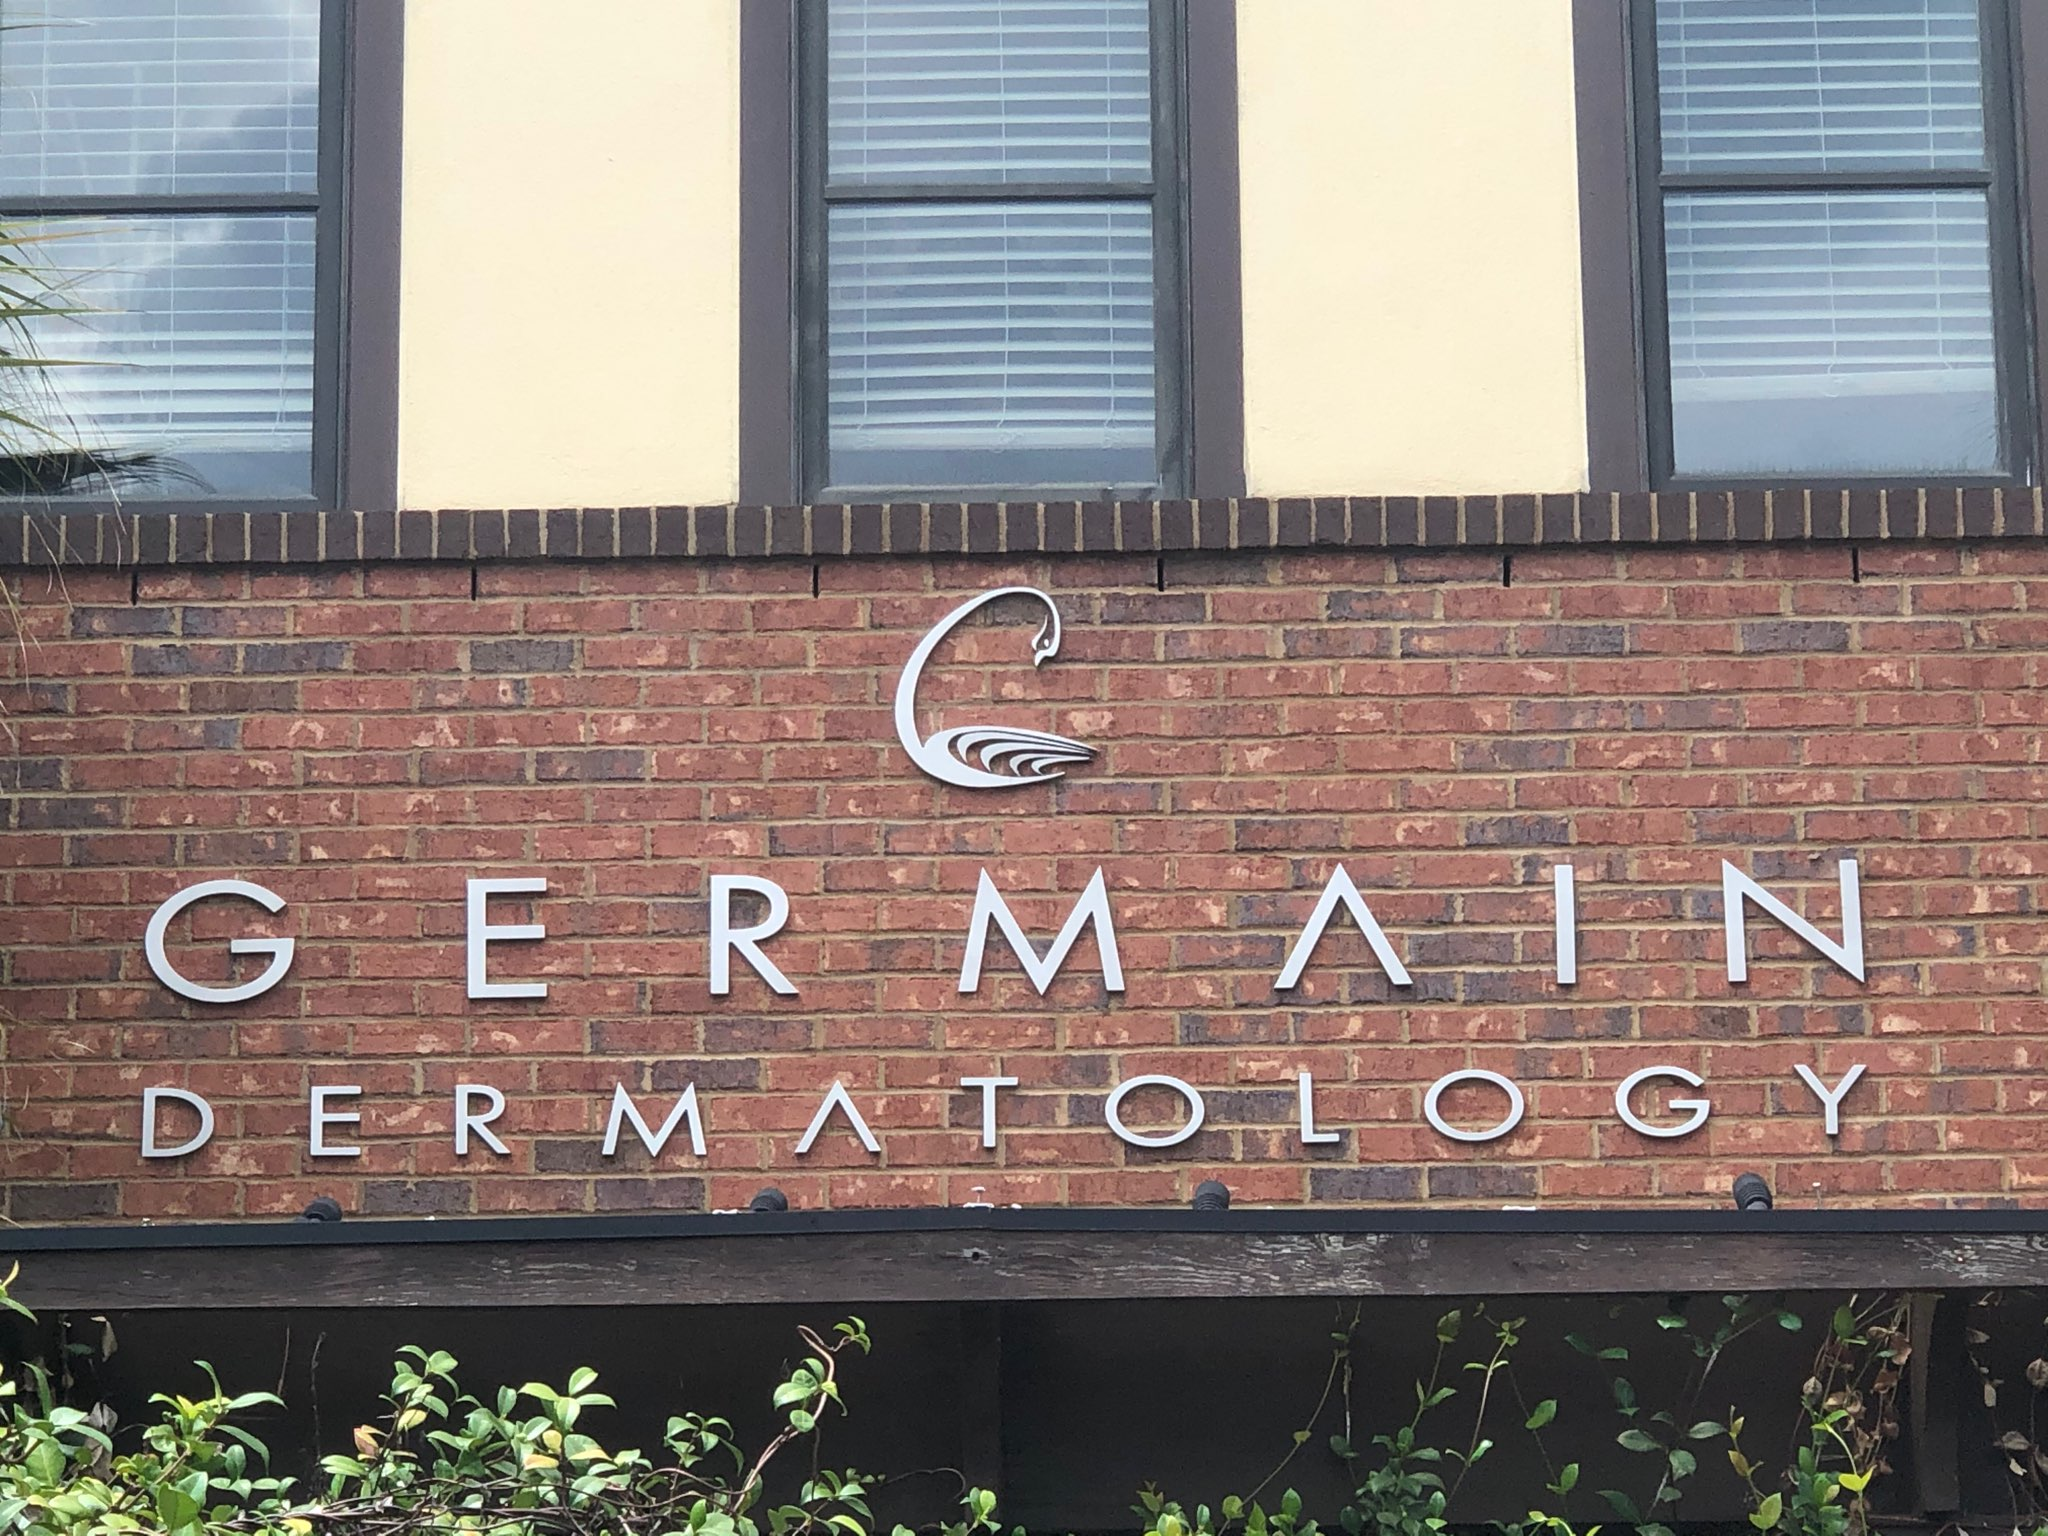 Brushed silver metal letters on a brick wall outdoors with text that reads: GERMAIN DERMATOLOGY